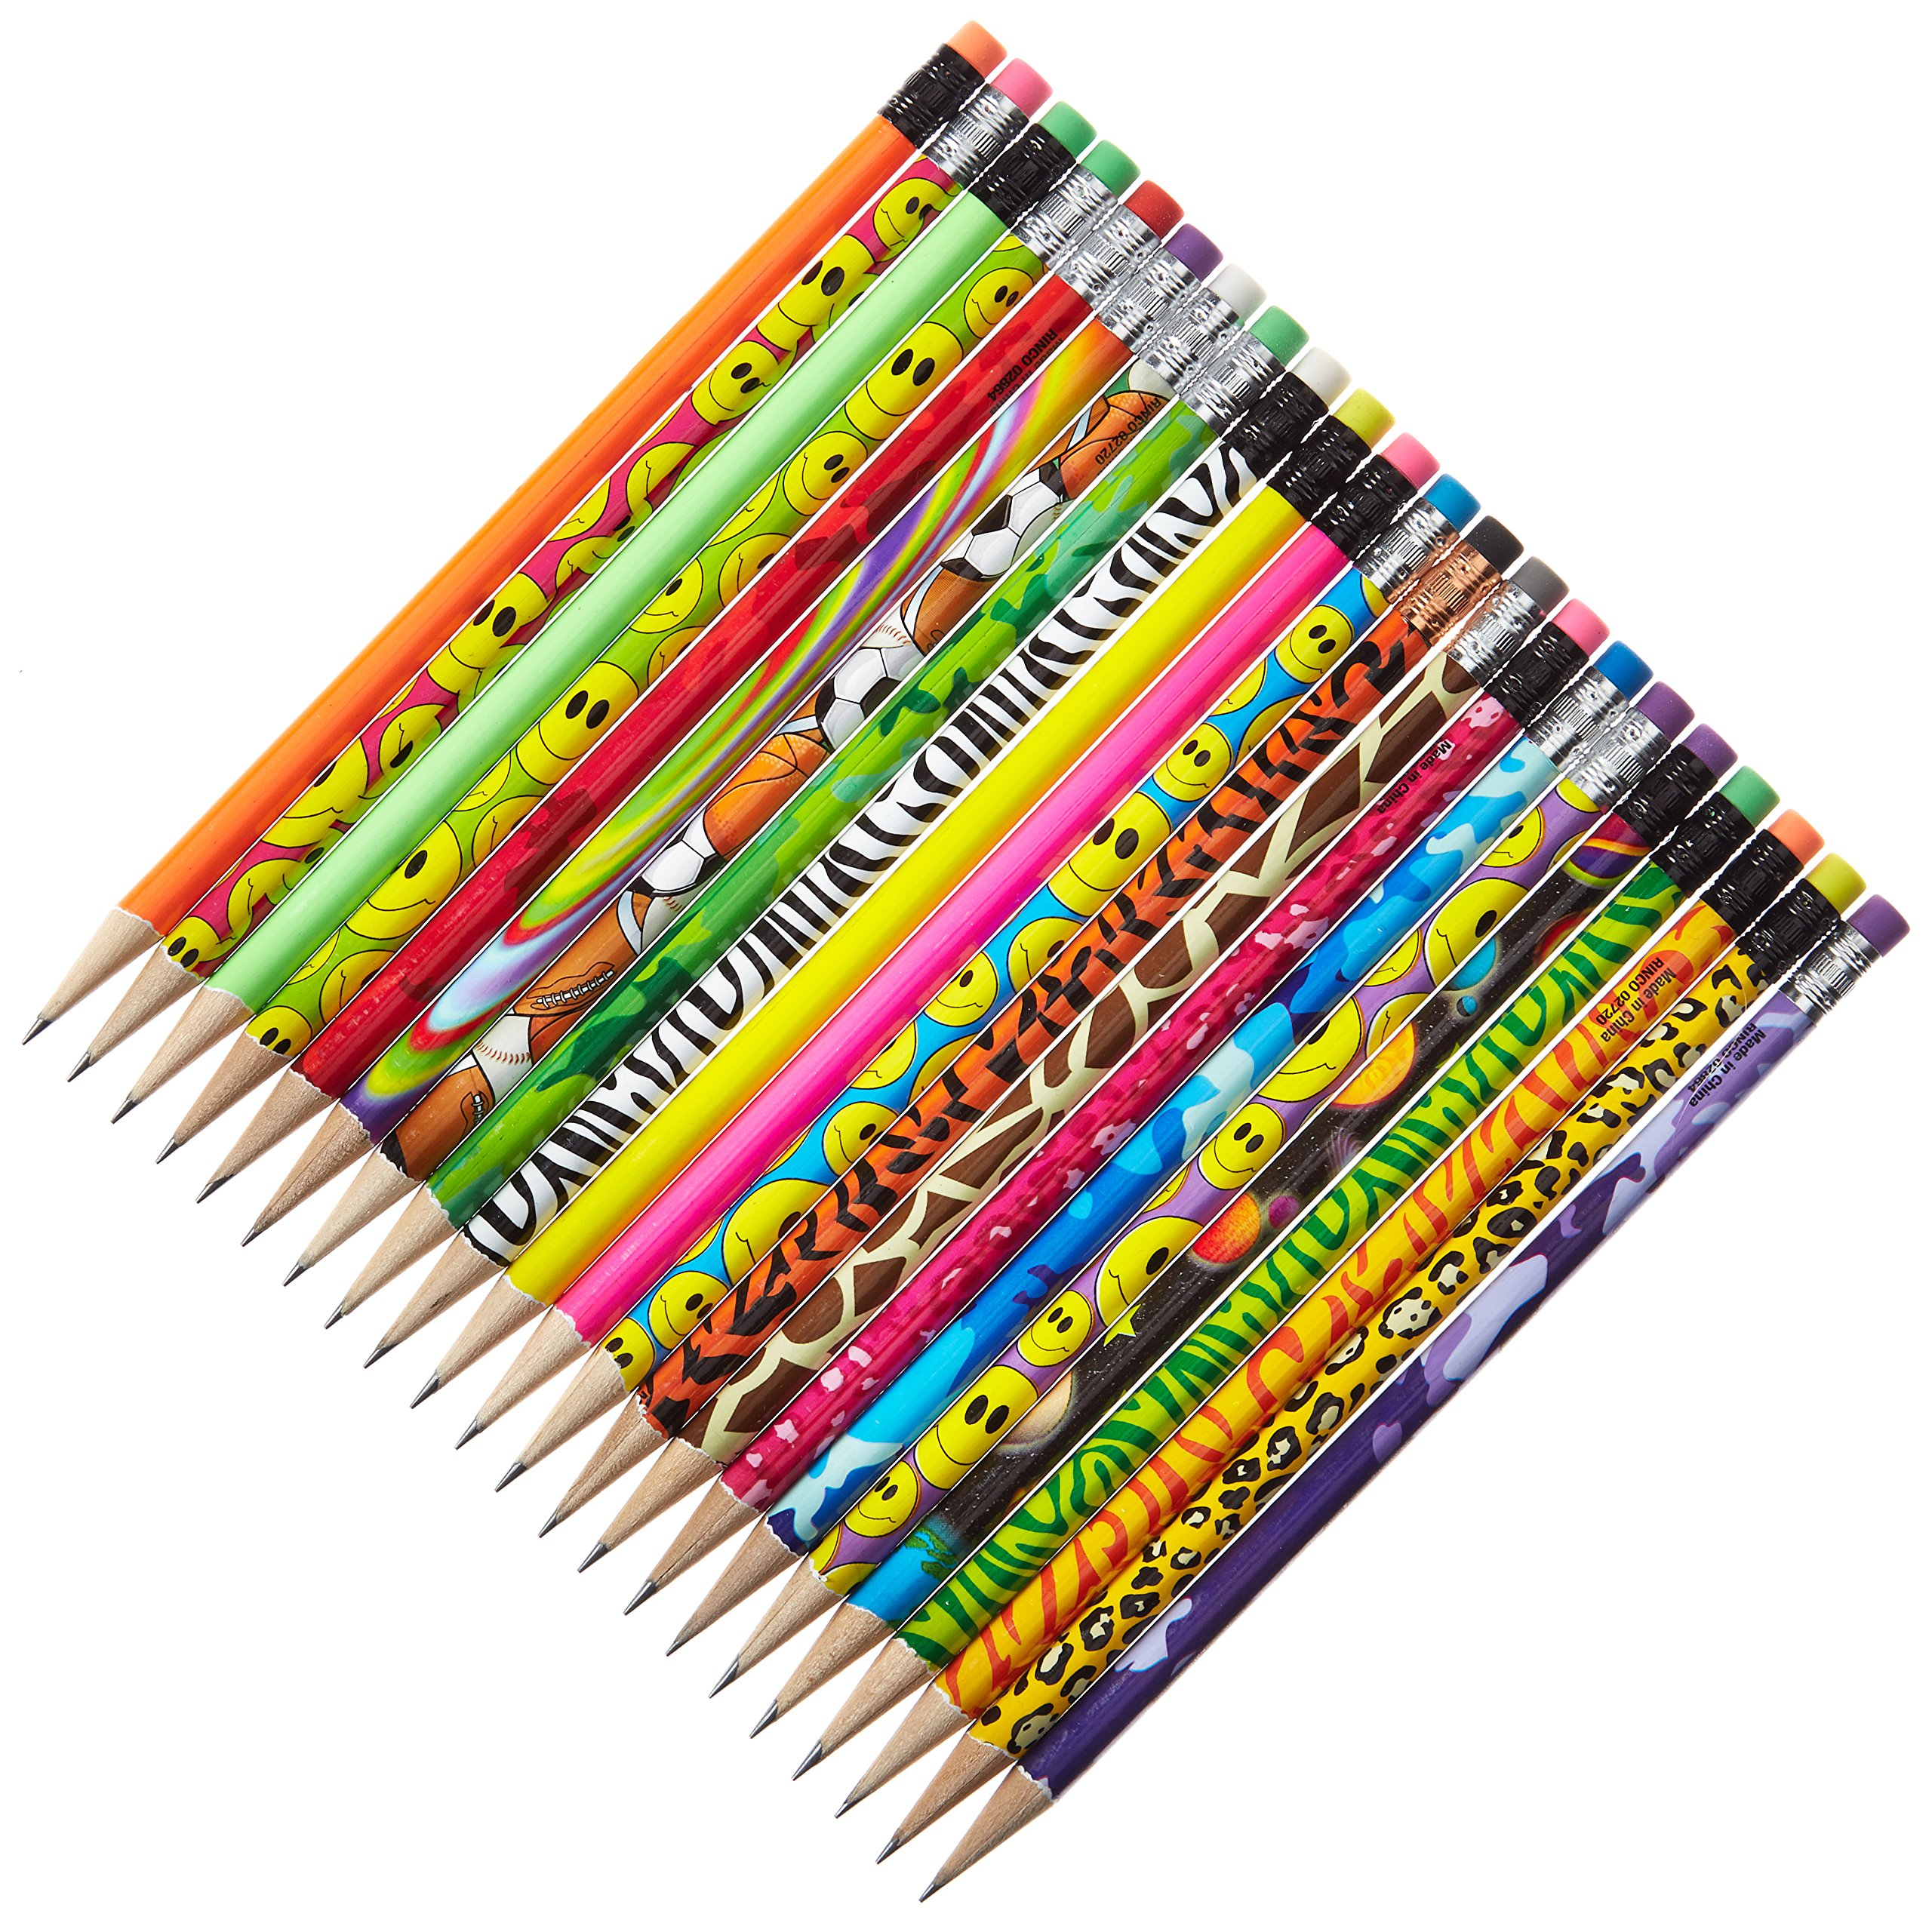 RI Novelty Assorted Colorful Kids Pencils (144 Pack)